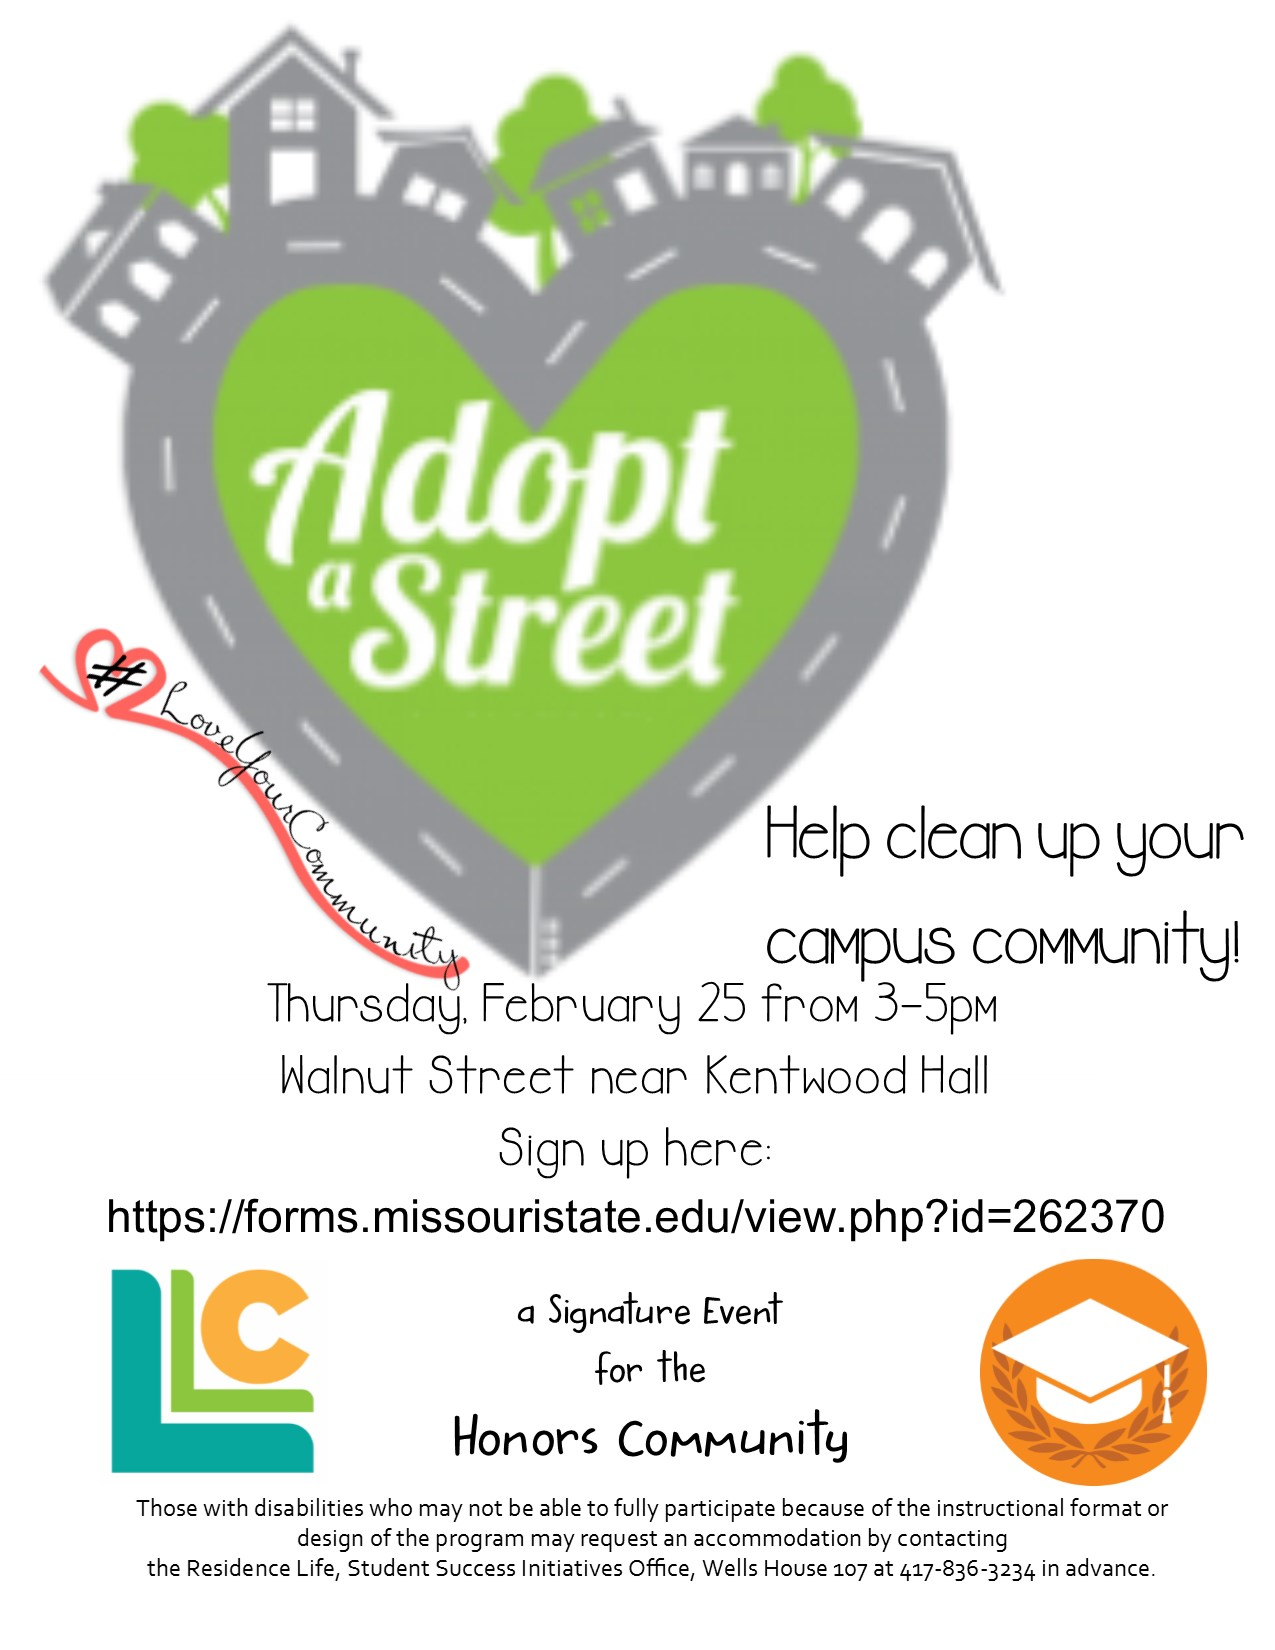 Honors Community: Adopt a Street